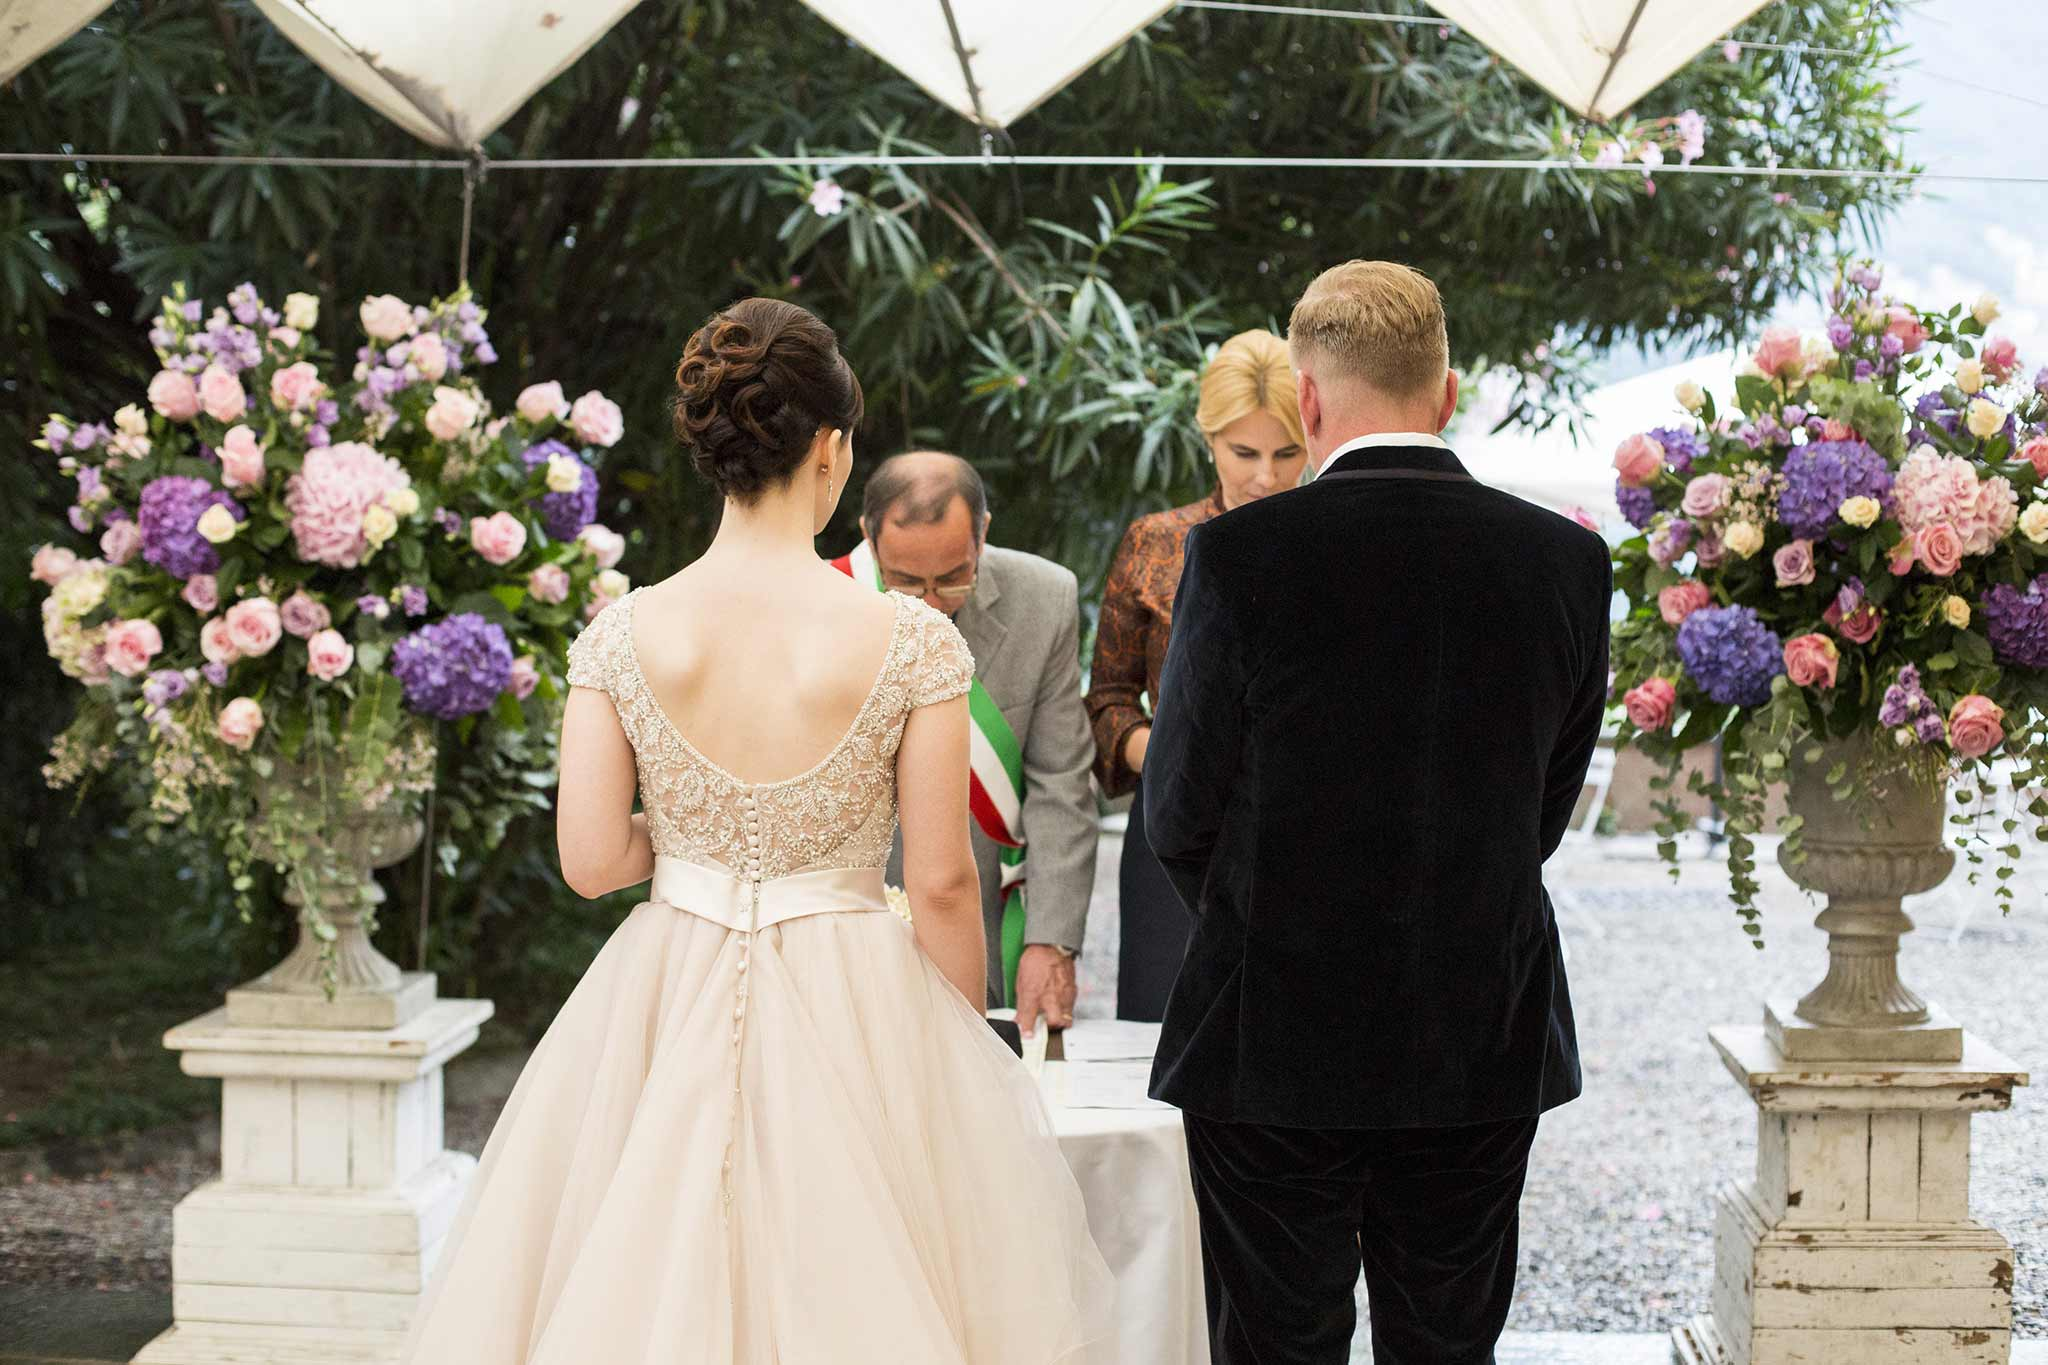 HOW TO GET MARRIED IN ITALY: CIVIL CEREMONIES